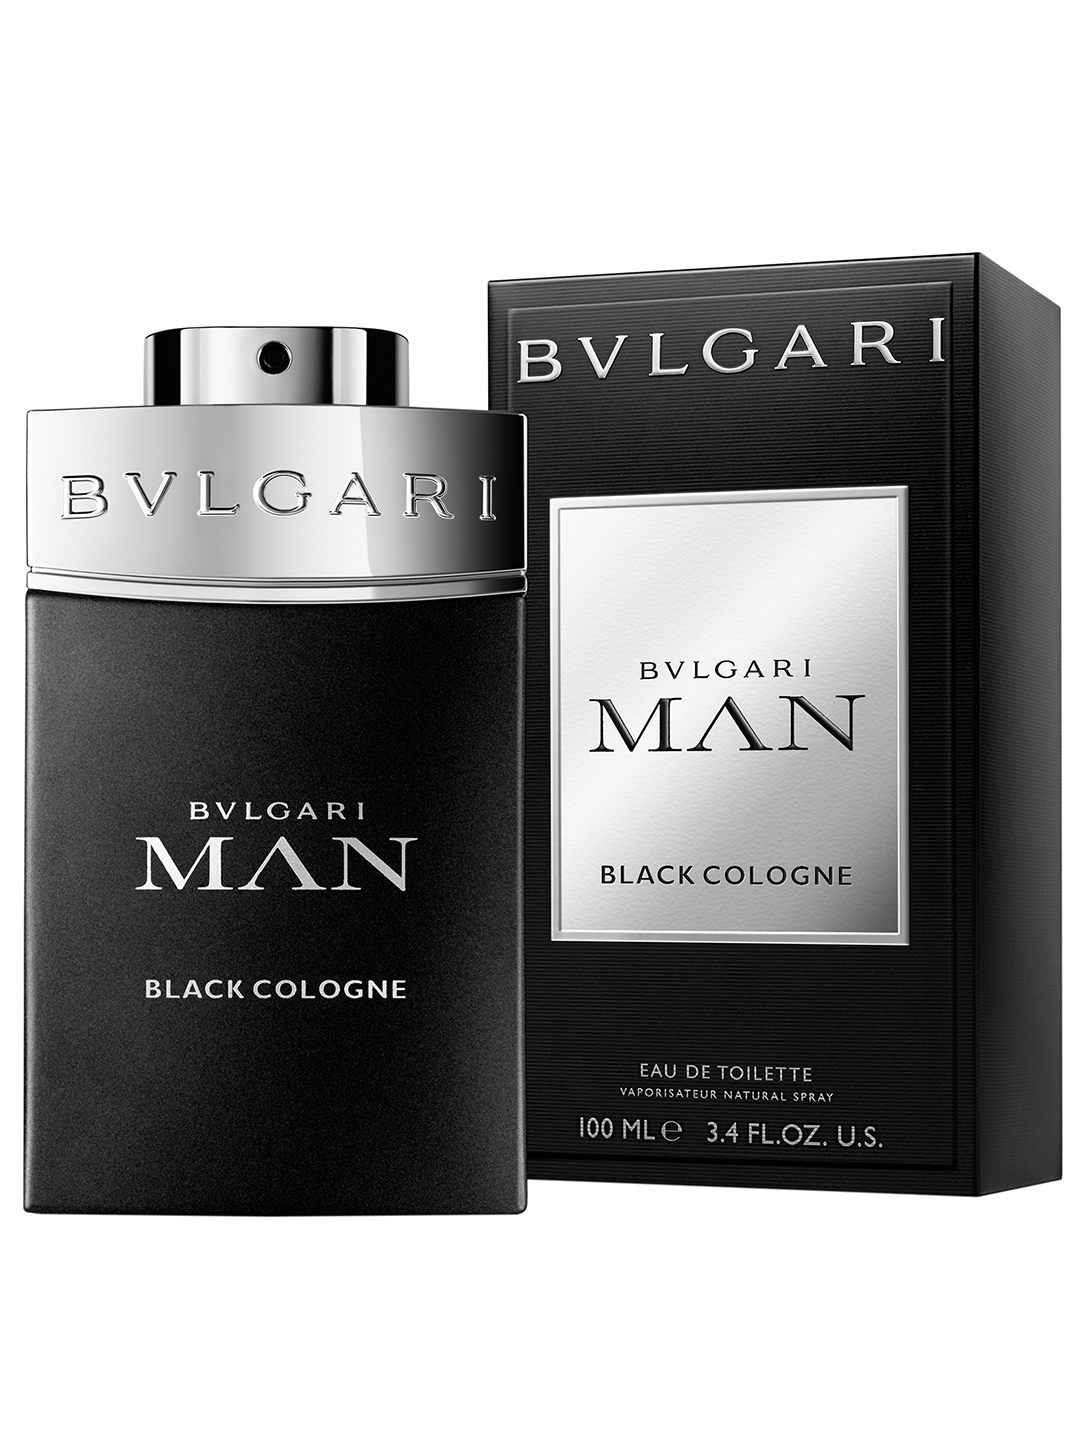 BVLGARI Man Black Cologne Eau de Toilette Beauty